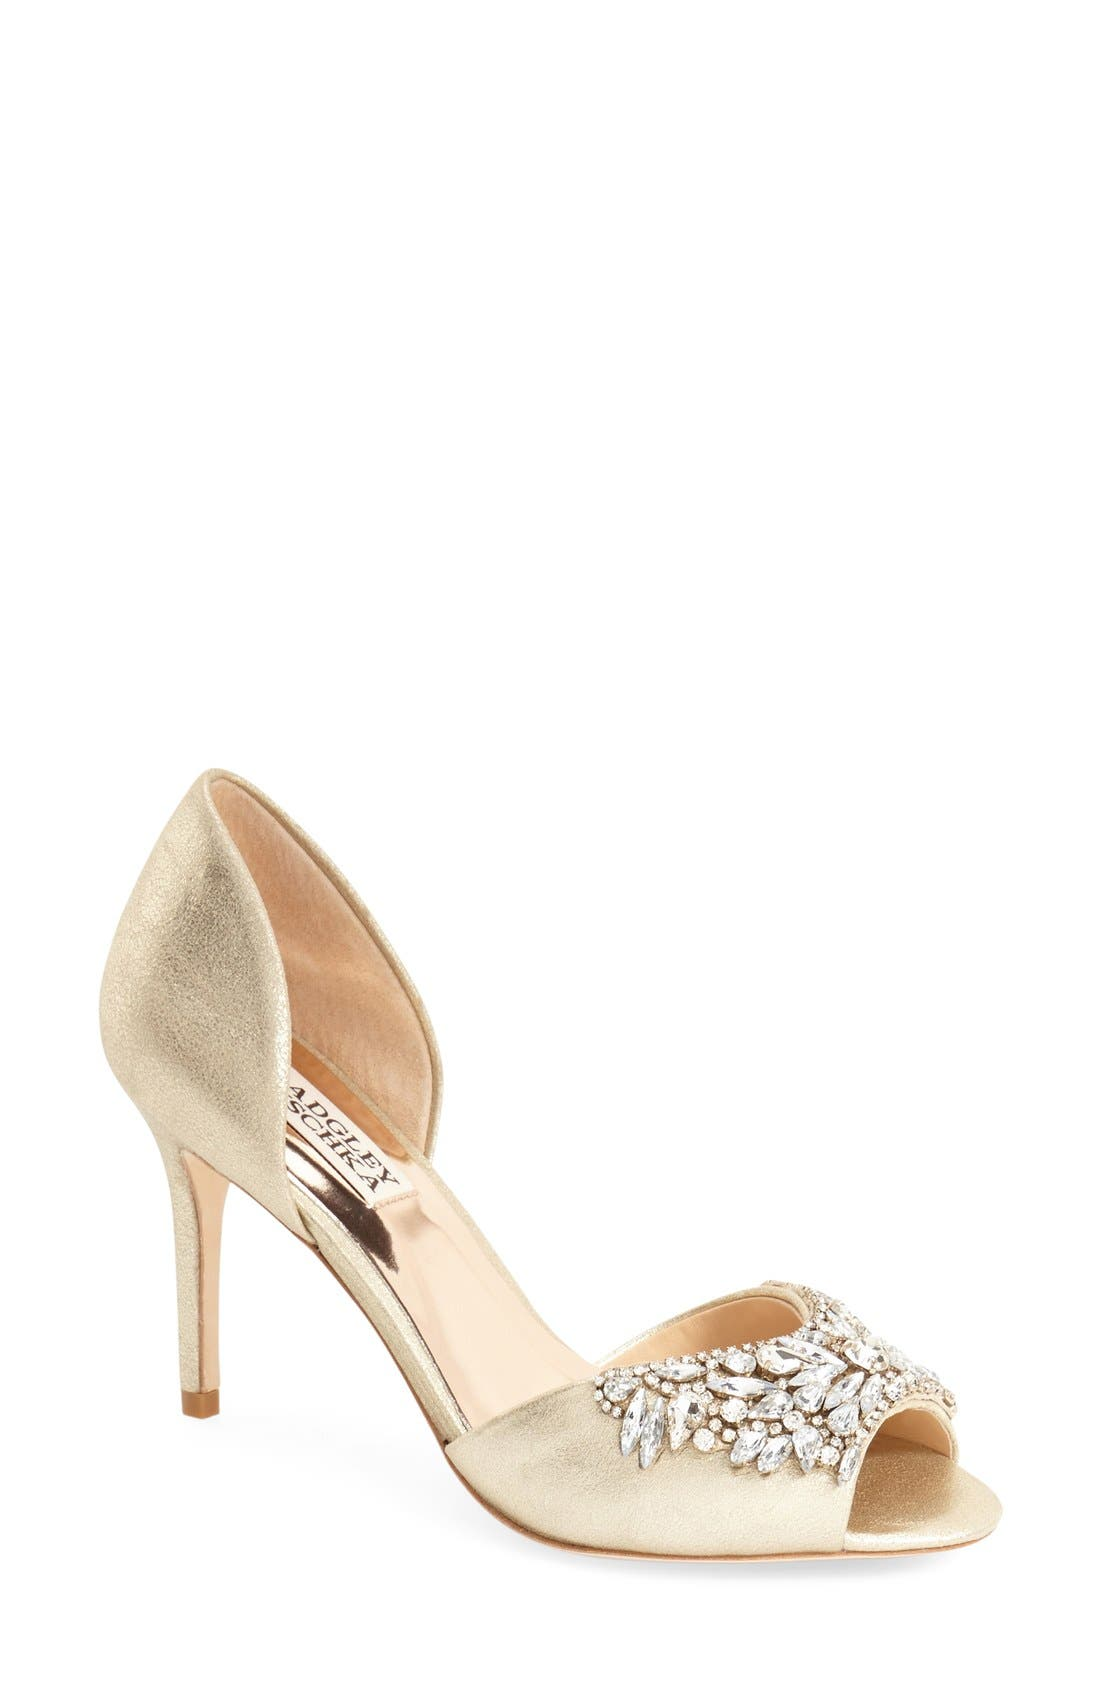 'Candance' Crystal Embellished d'Orsay Pump,                             Main thumbnail 1, color,                             040